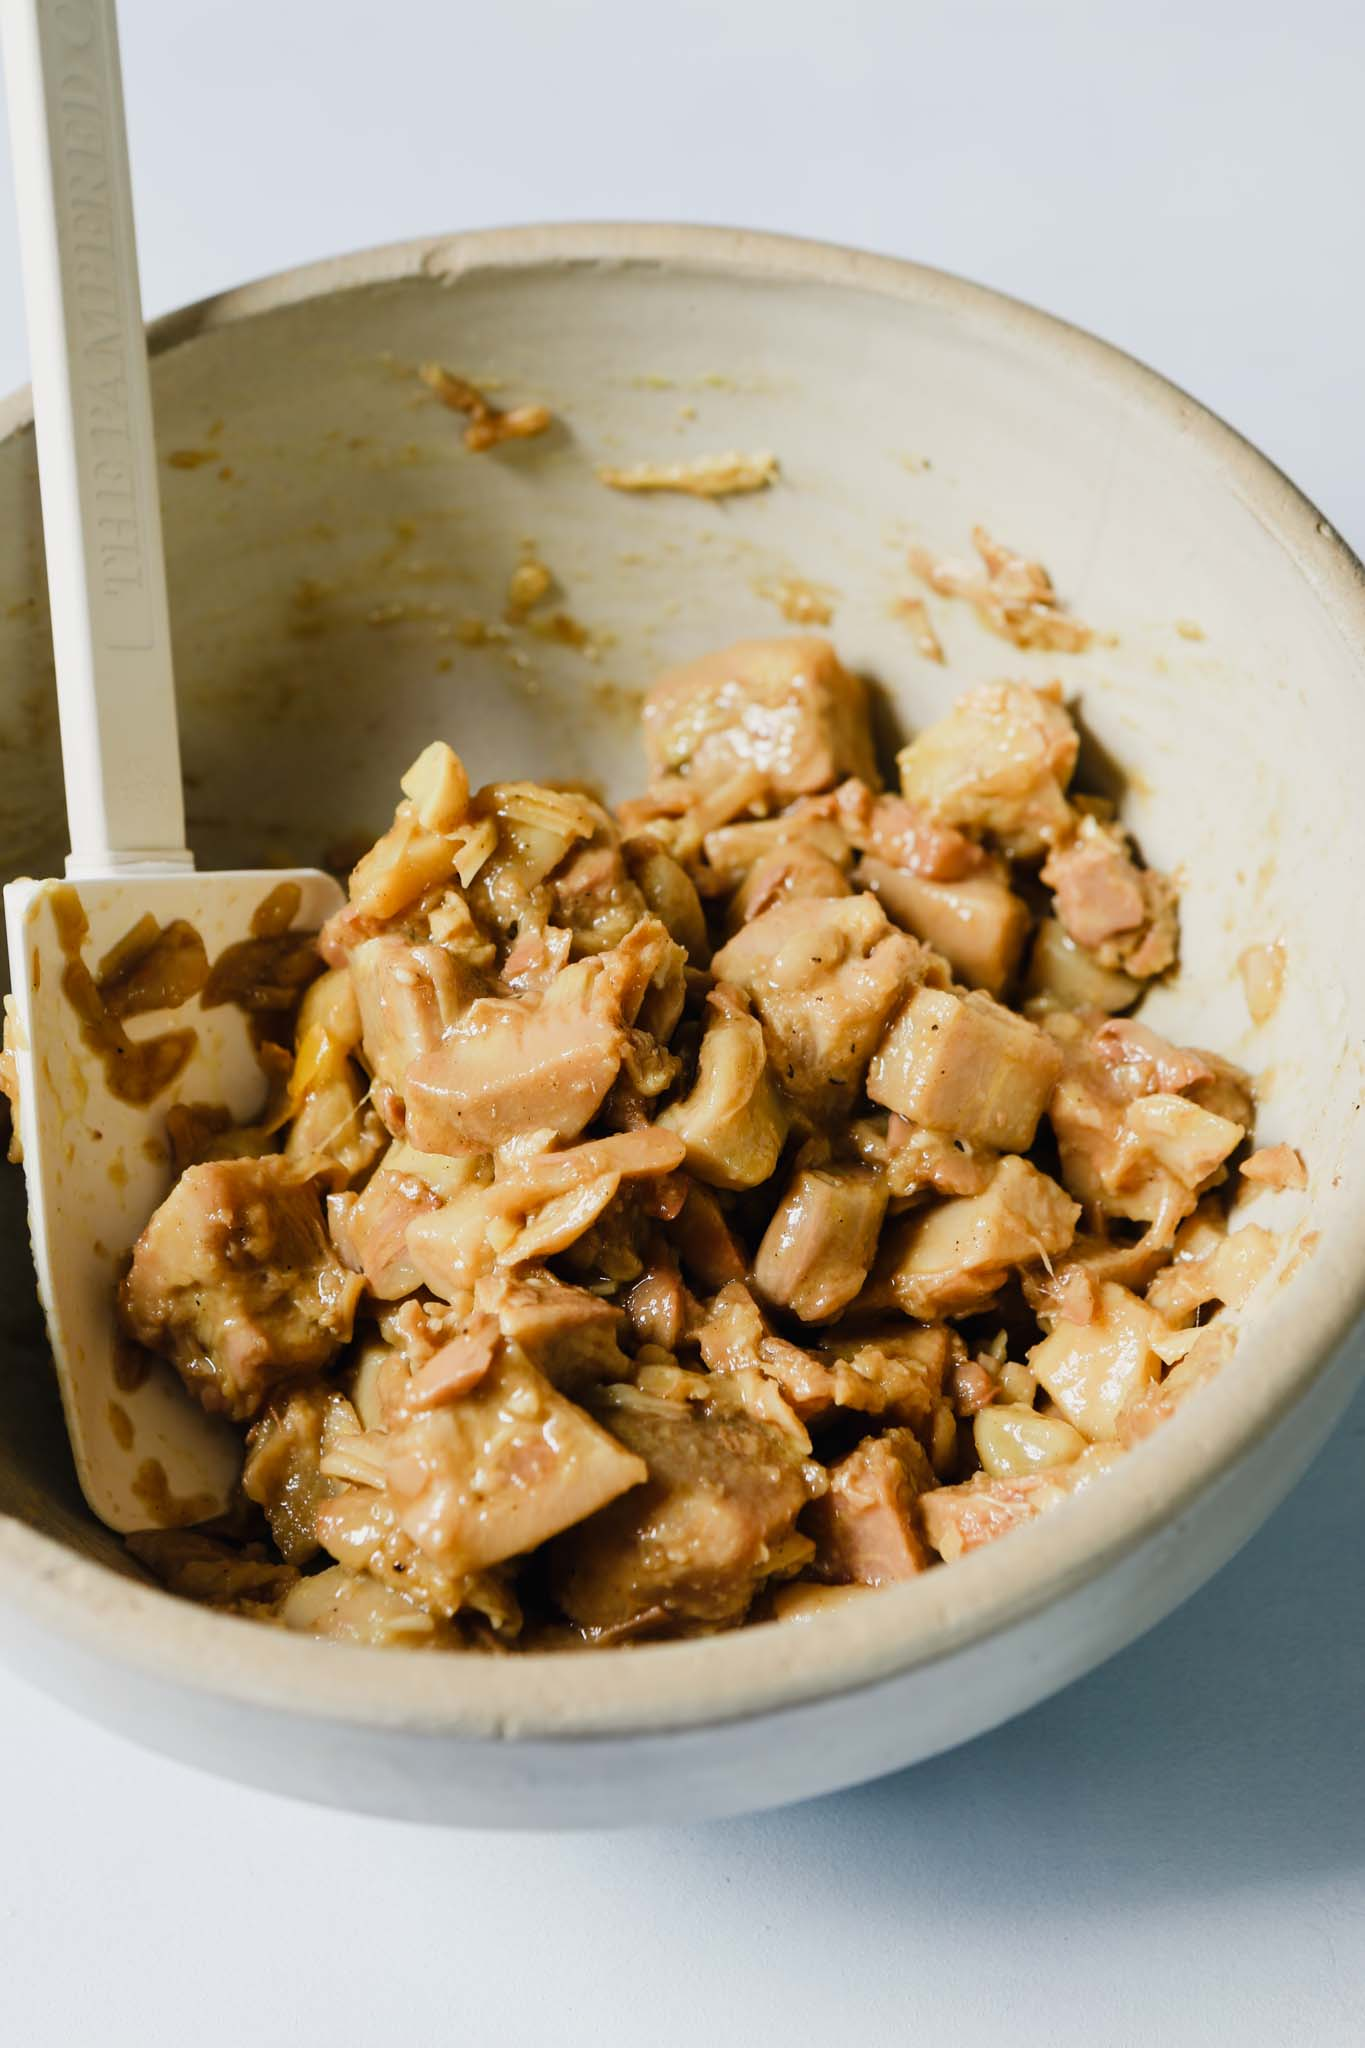 Photograph of jackfruit tossed with a banh mi sauce in a brown bowl